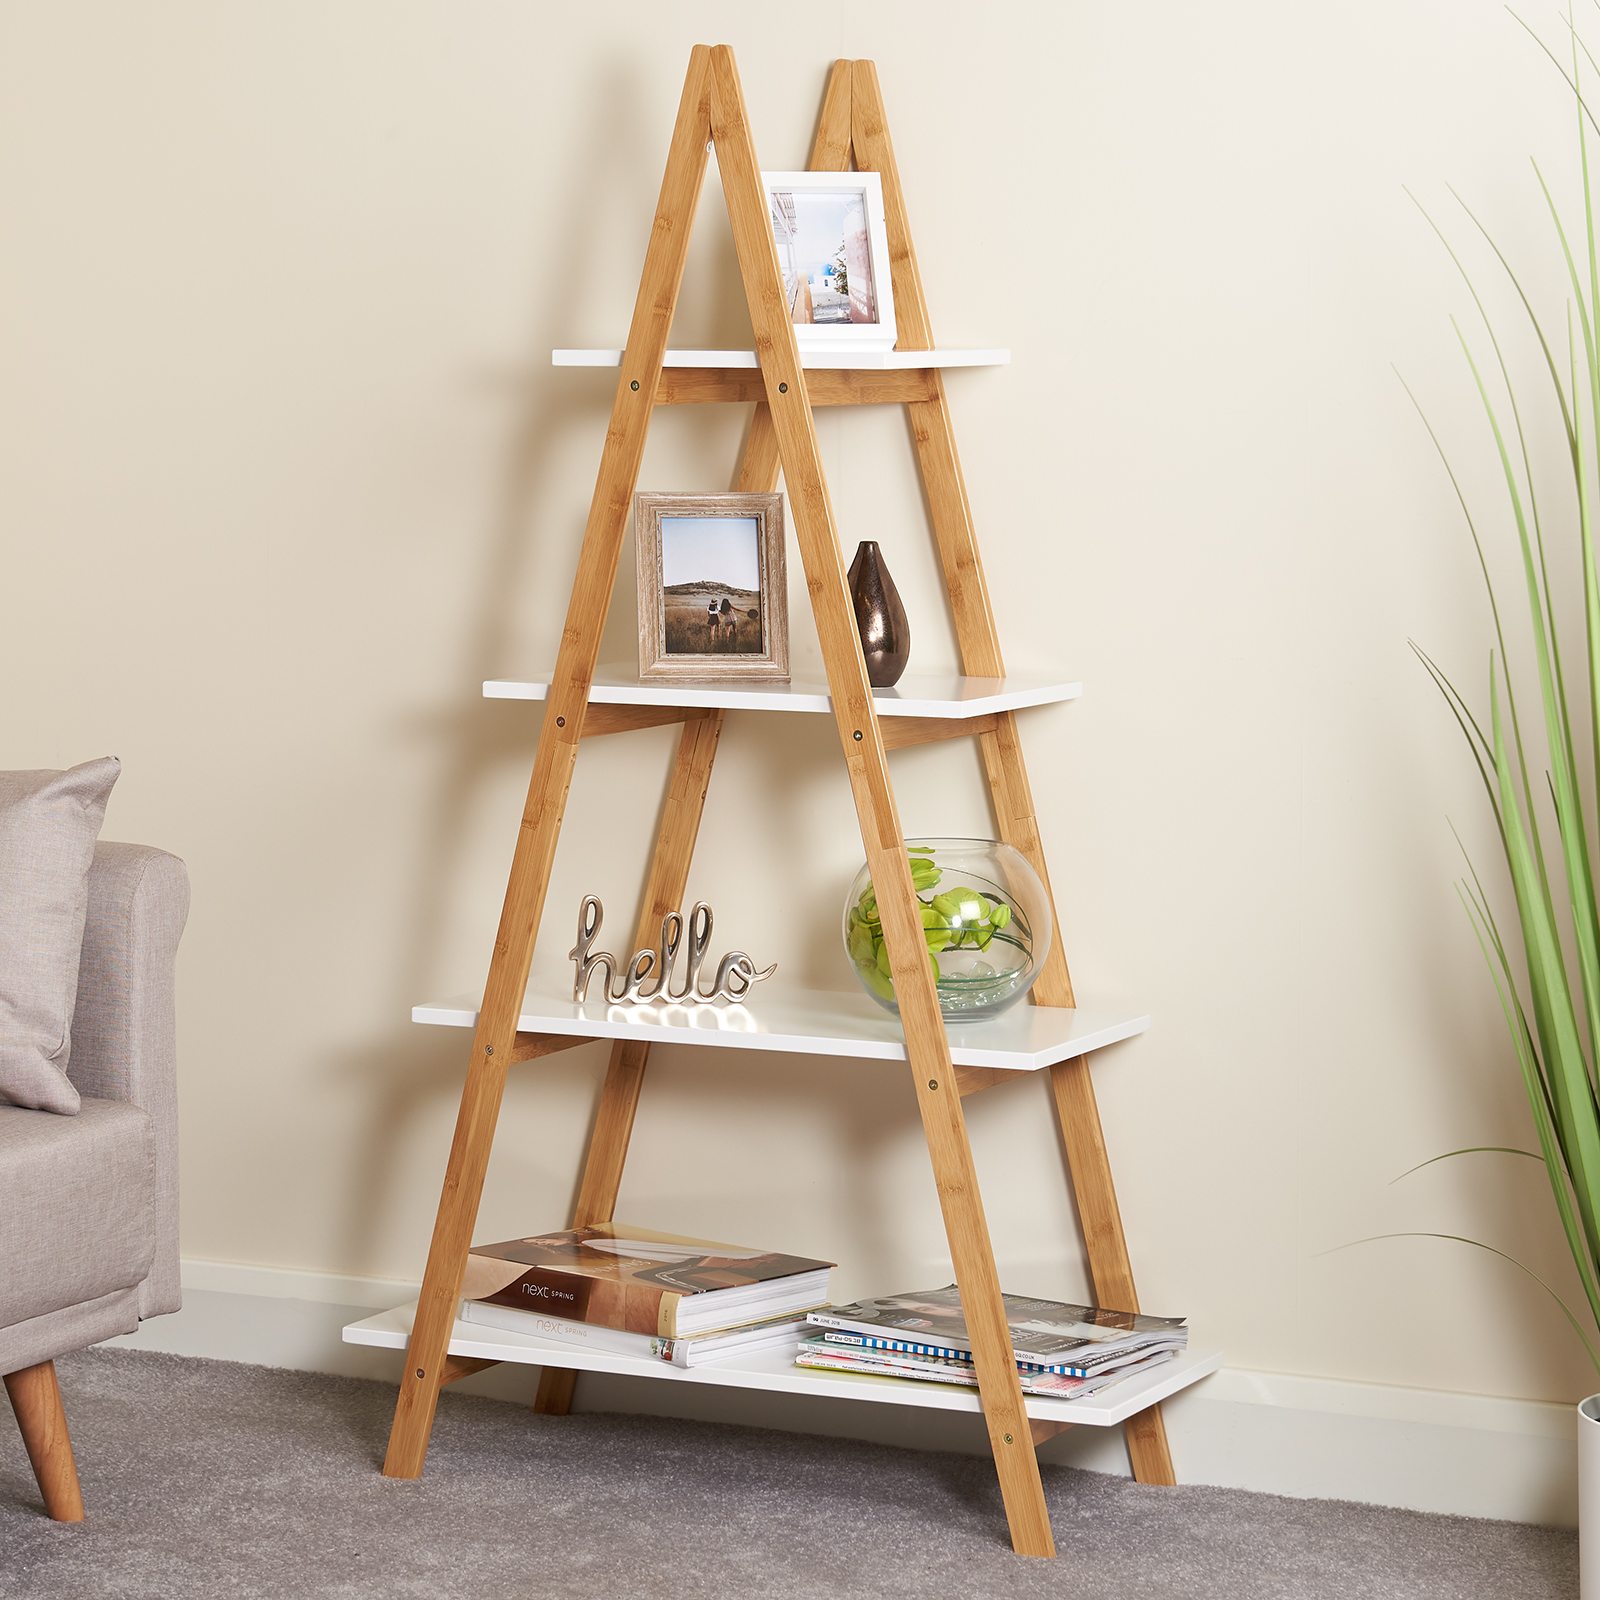 Hartleys 4 Tier White Wooden Ladder Shelf Bookcase Display Unit Bamboo Shelves 5051990758551 Ebay